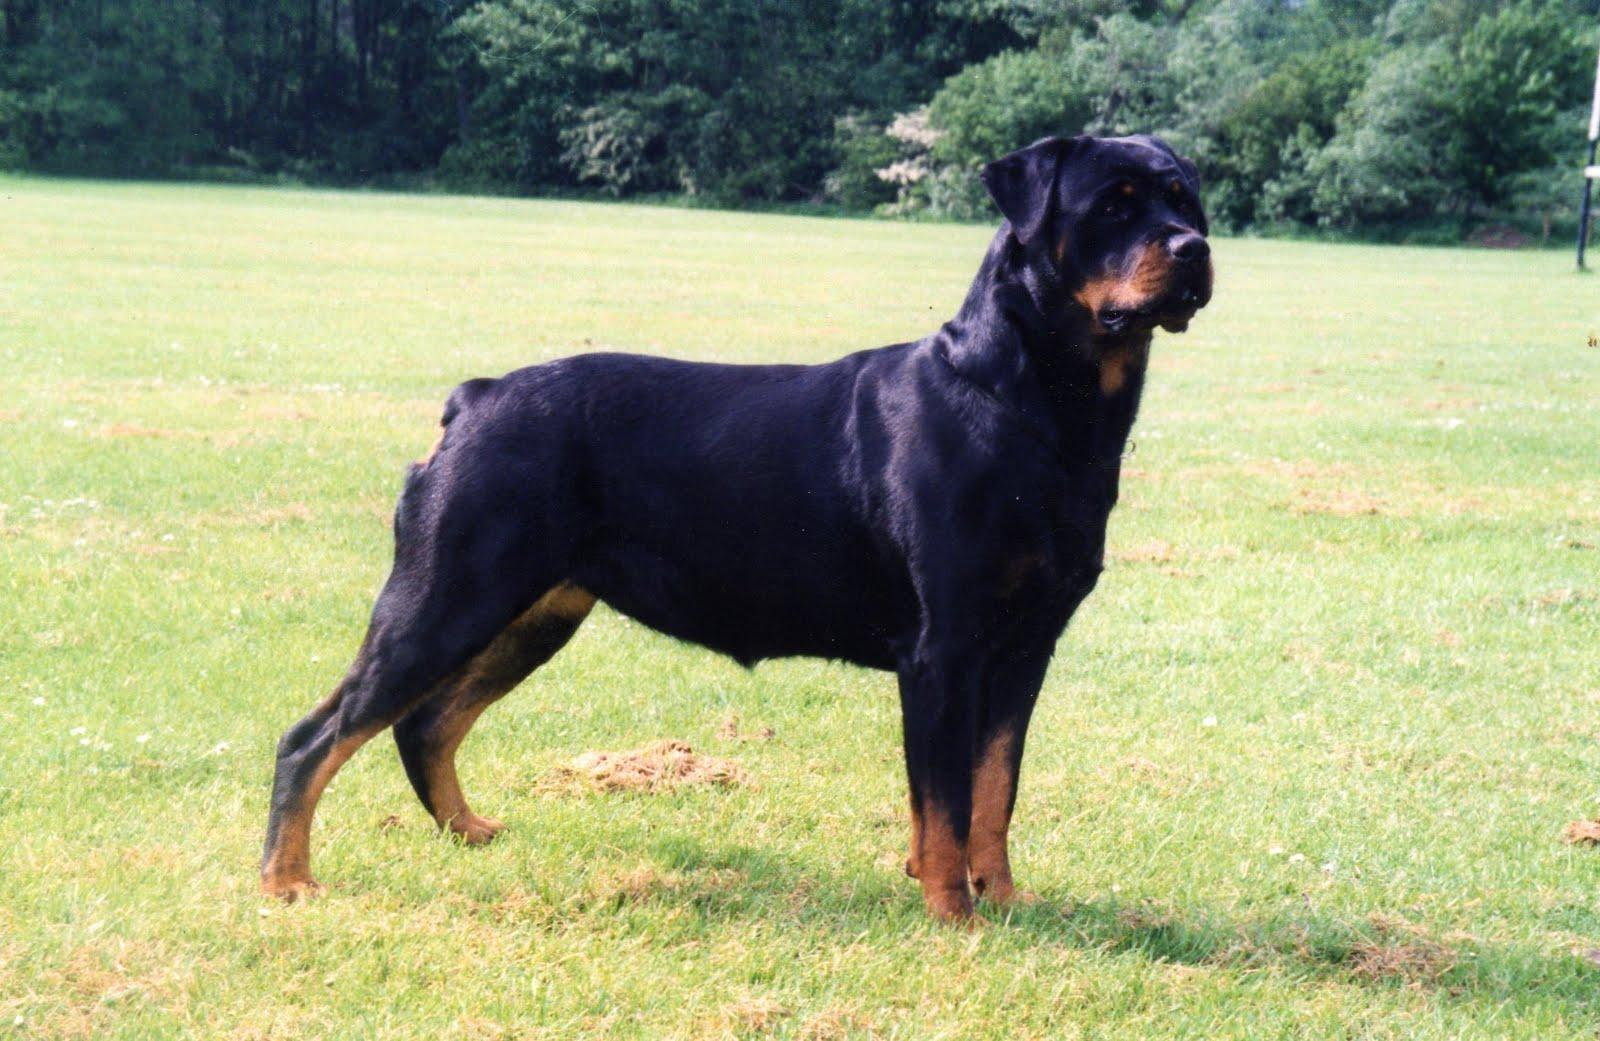 Rottweiler Wallpapers, Free Images, Best Dogs Wallpapers